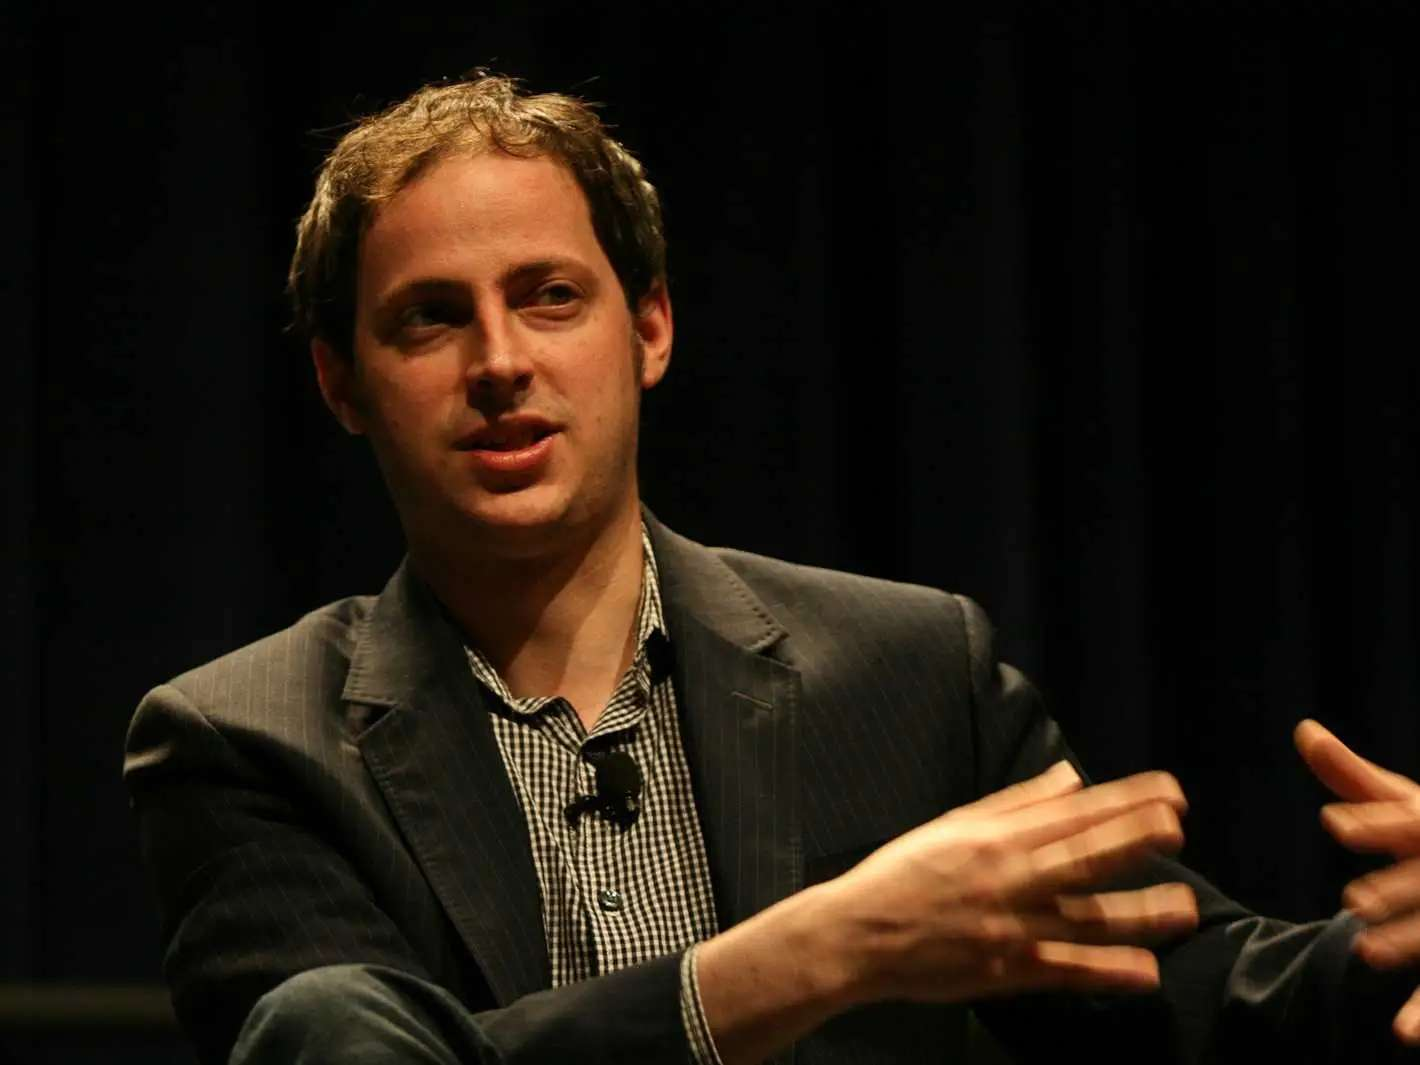 Nate Silver checks Twitter, Memeorandum, and Real Clear Politics pre-coffee in election years.